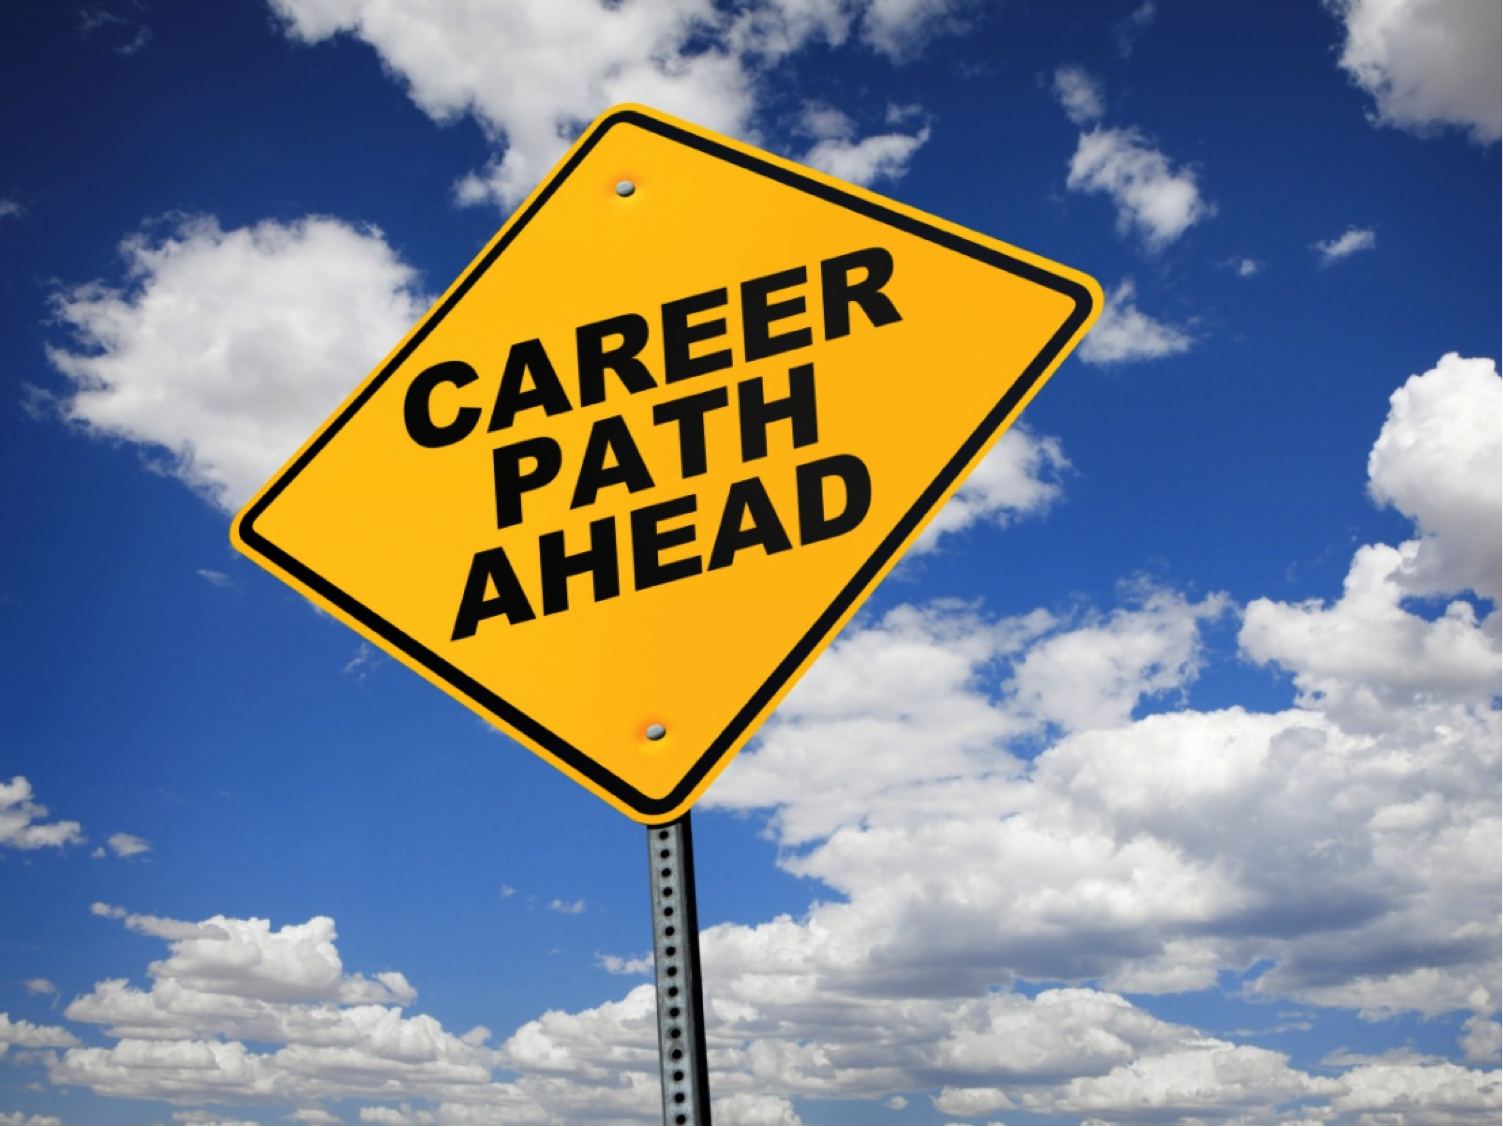 Reflections on the Technology Career Matrix and Its Pitfalls